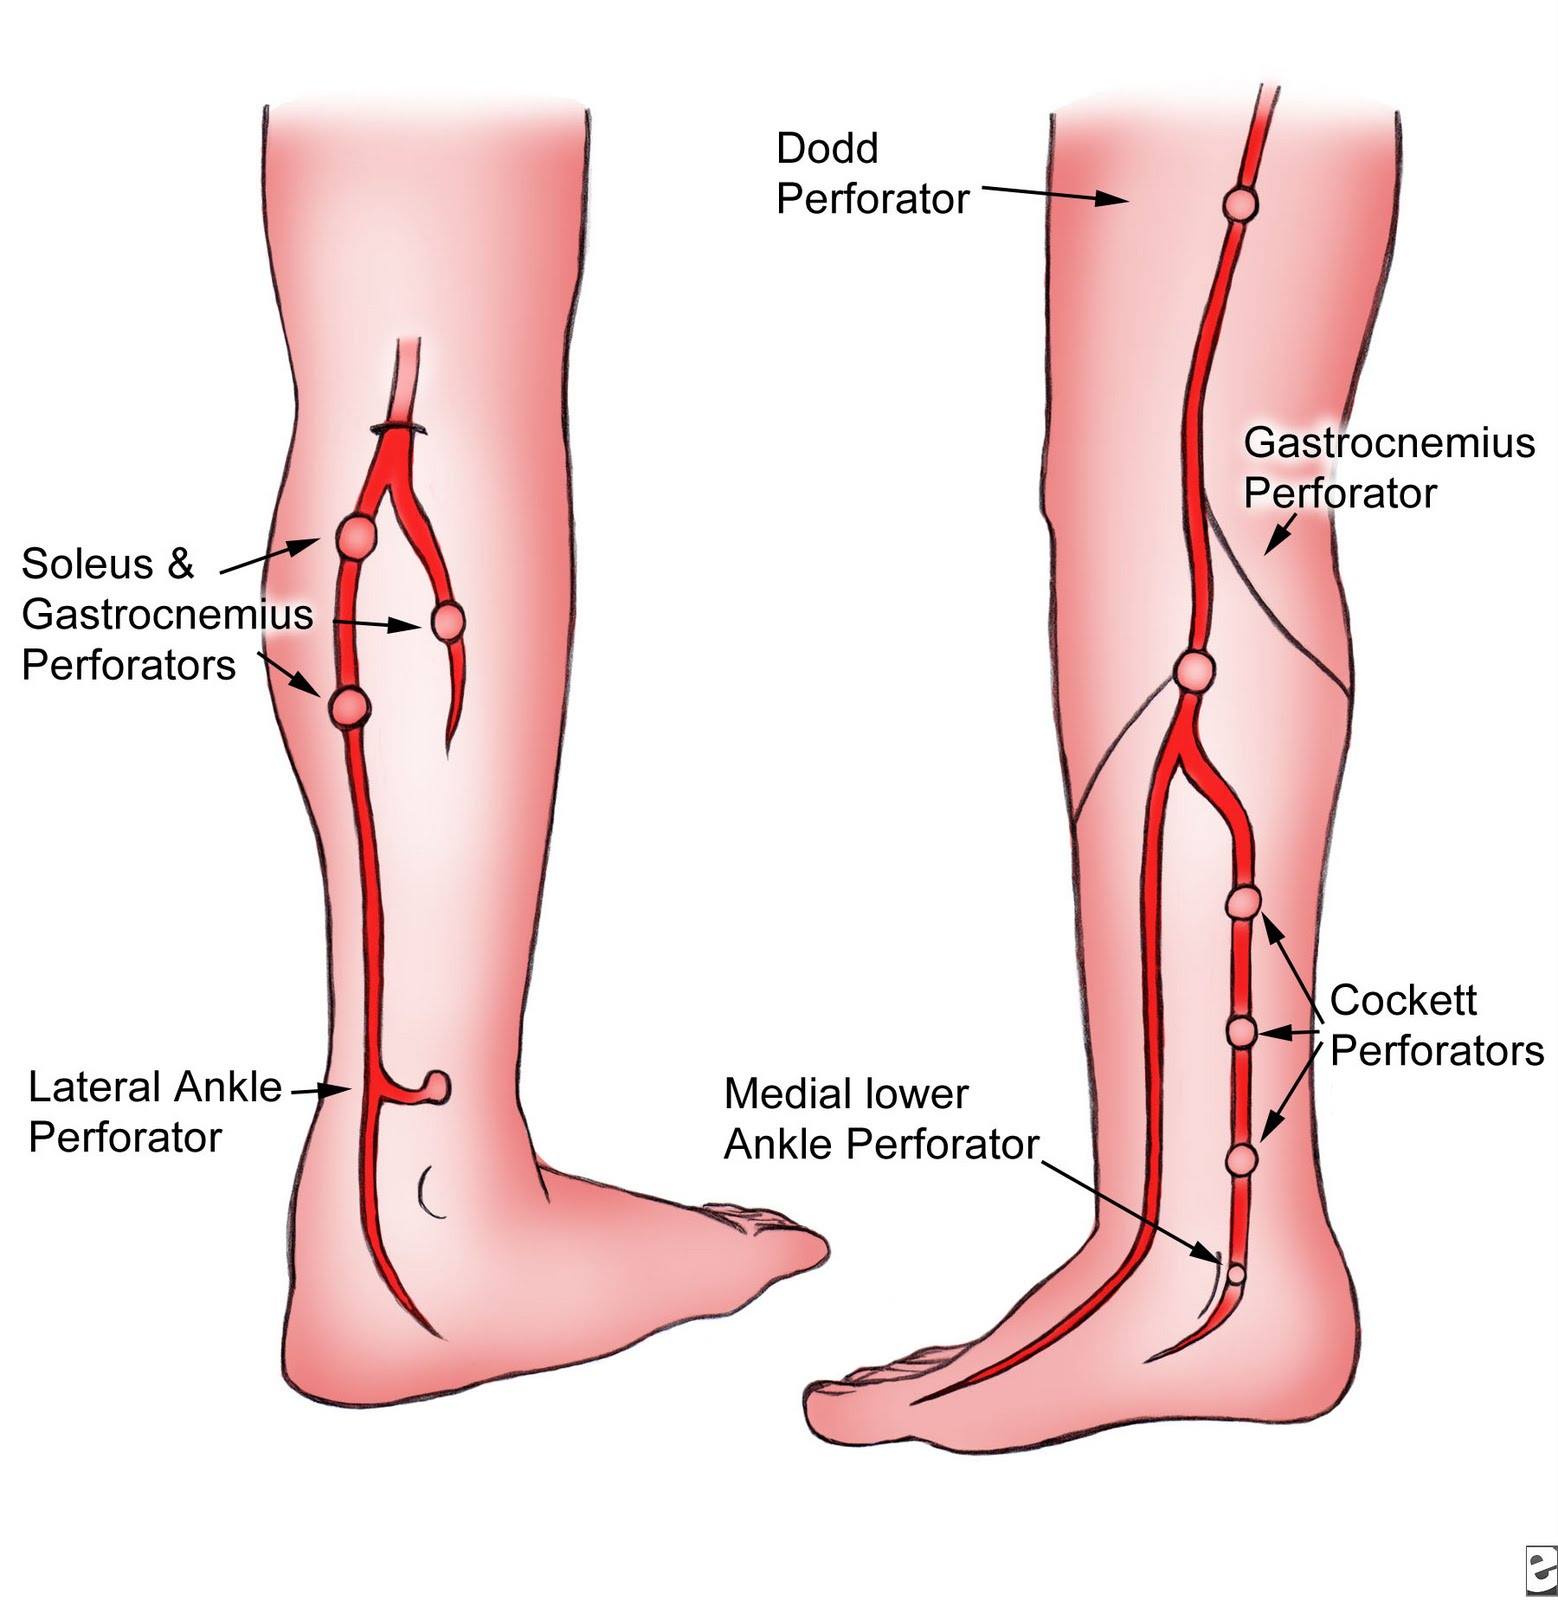 RadiologySpirit: 2010-07-11 of Peripheral arterial insufficiency icd 9